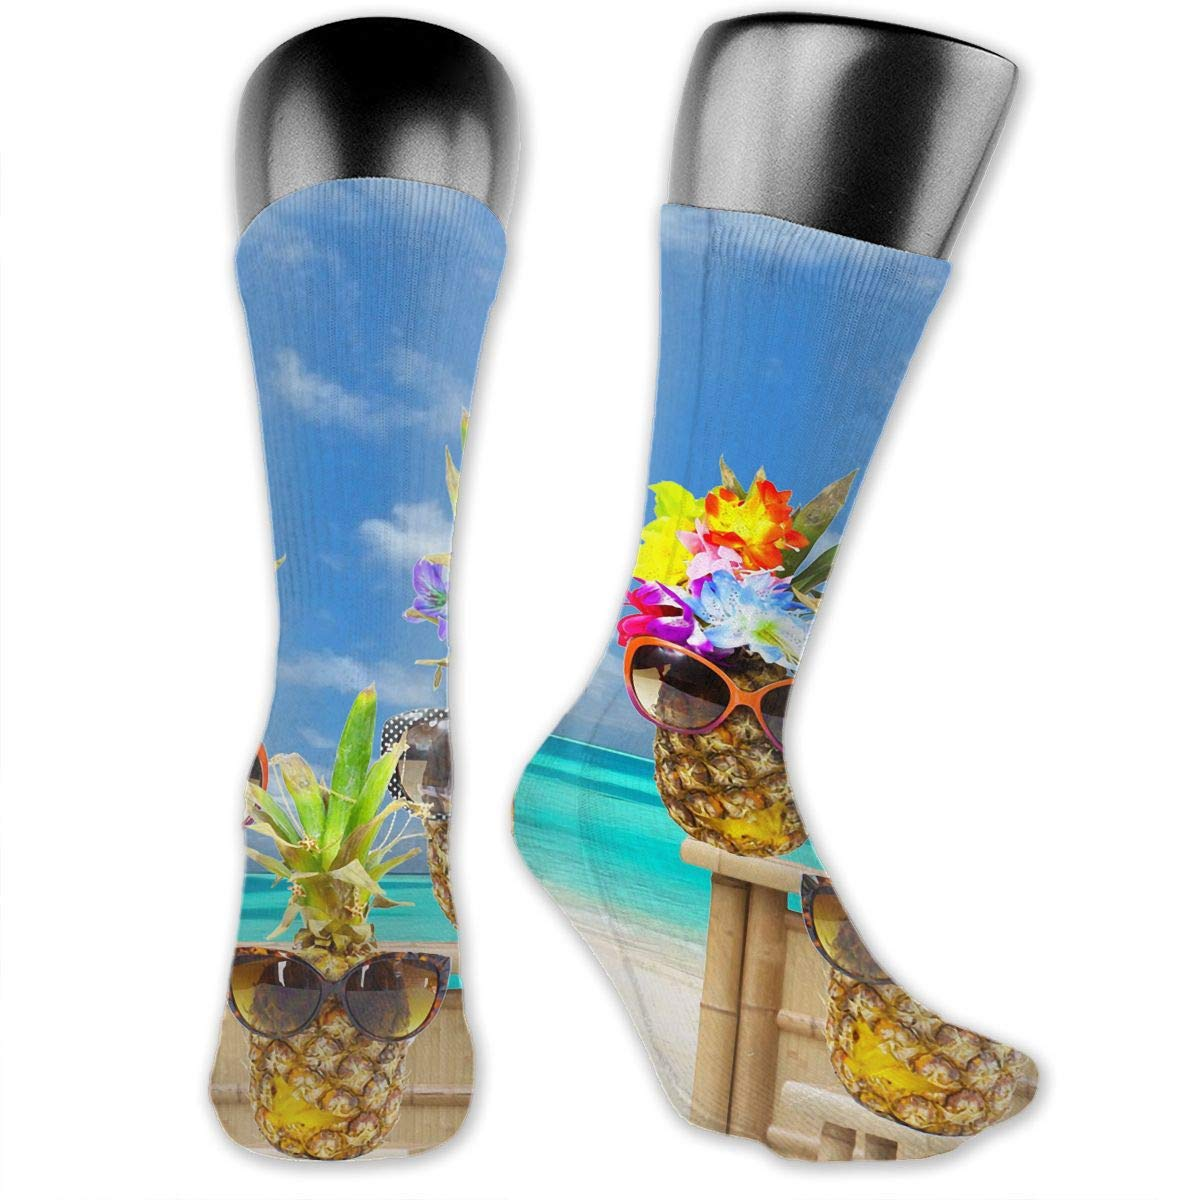 OLGCZM Pineapple Beach Sunglasses Men Womens Thin High Ankle Casual Socks Fit Outdoor Hiking Trail